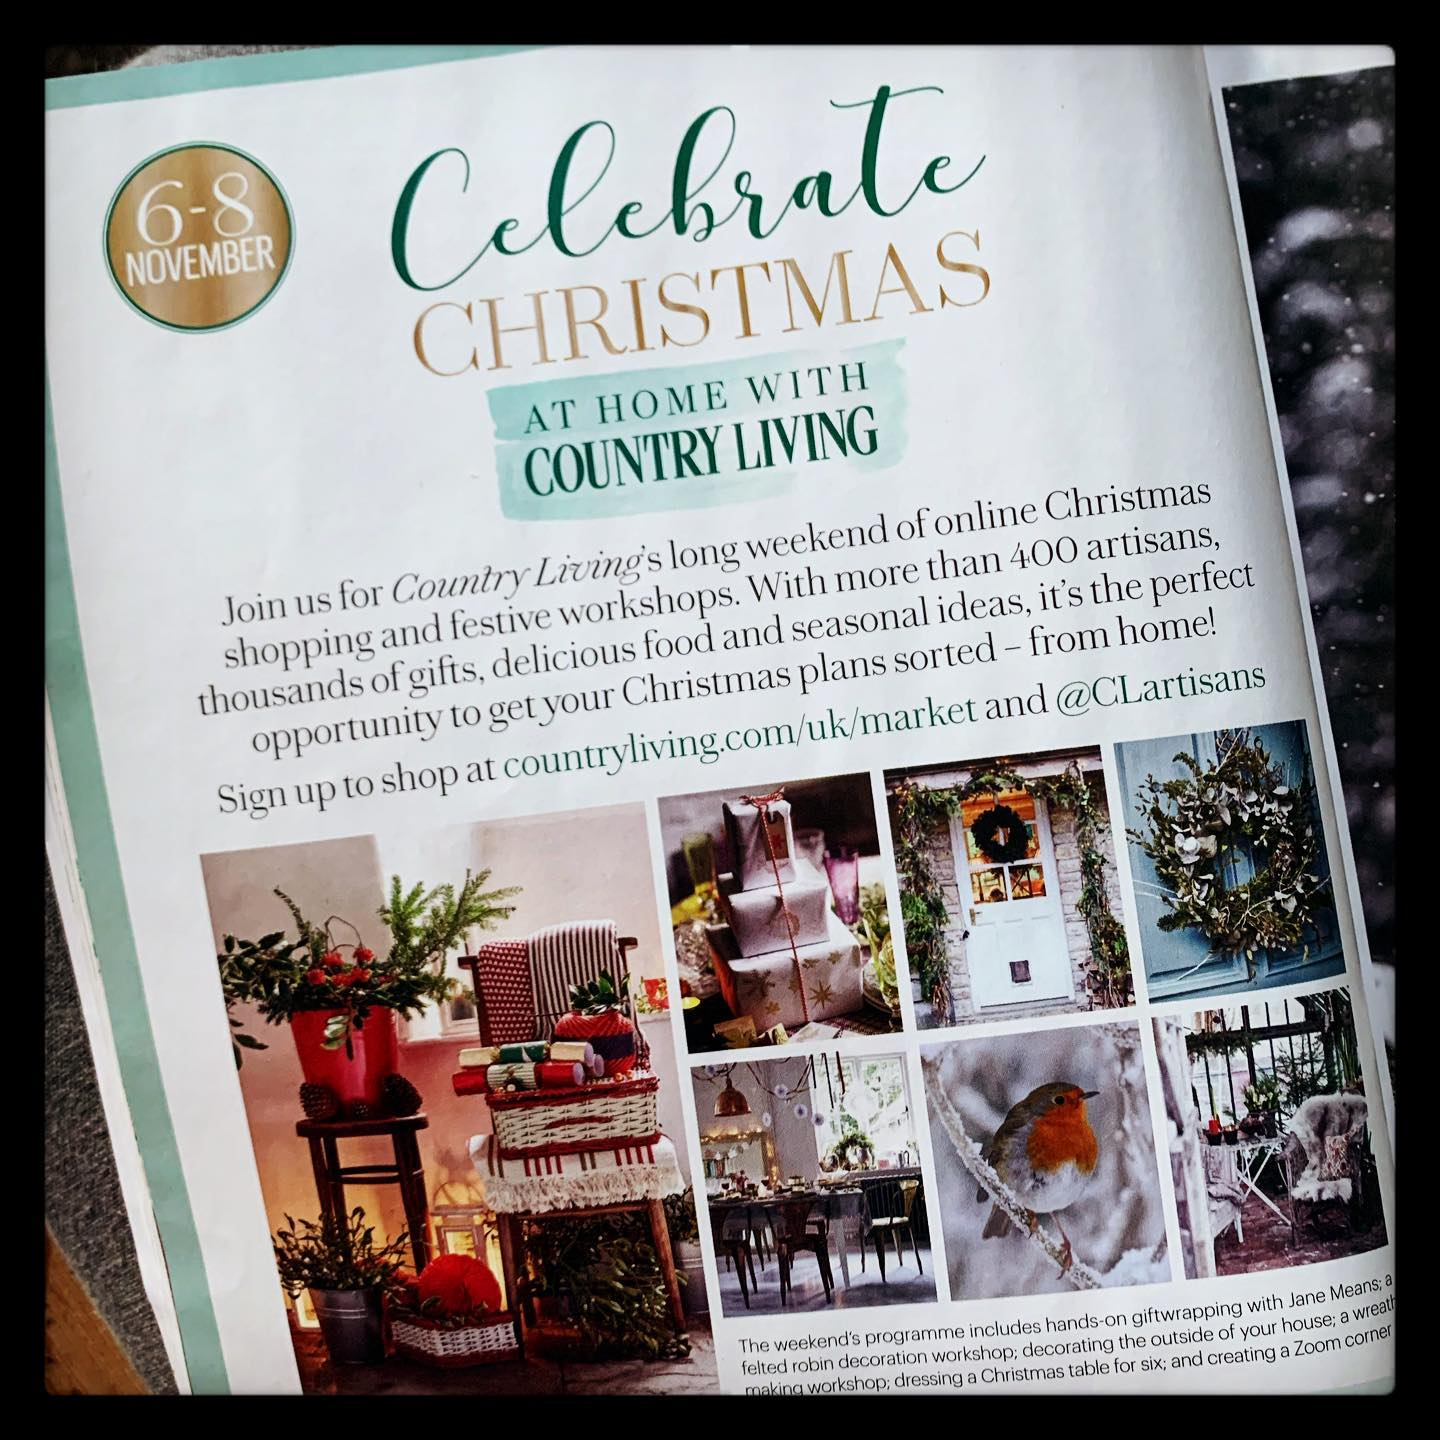 We will be taking part in the @clartisans Christmas event this coming weekend. Head over to their account and register to receive exclusive discounts to hundreds of participating artisans! Offers valid from midday Friday 6th to midnight Sunday 8th.We'll definitely be browsing what's on offer 🙂..@countrylivinguk #countrylivingchristmas #shopfromhome #shoponline #discounts #features #homewares #jewellery #craft #clothing #skincare #takepart #shopsmall #shopindependent